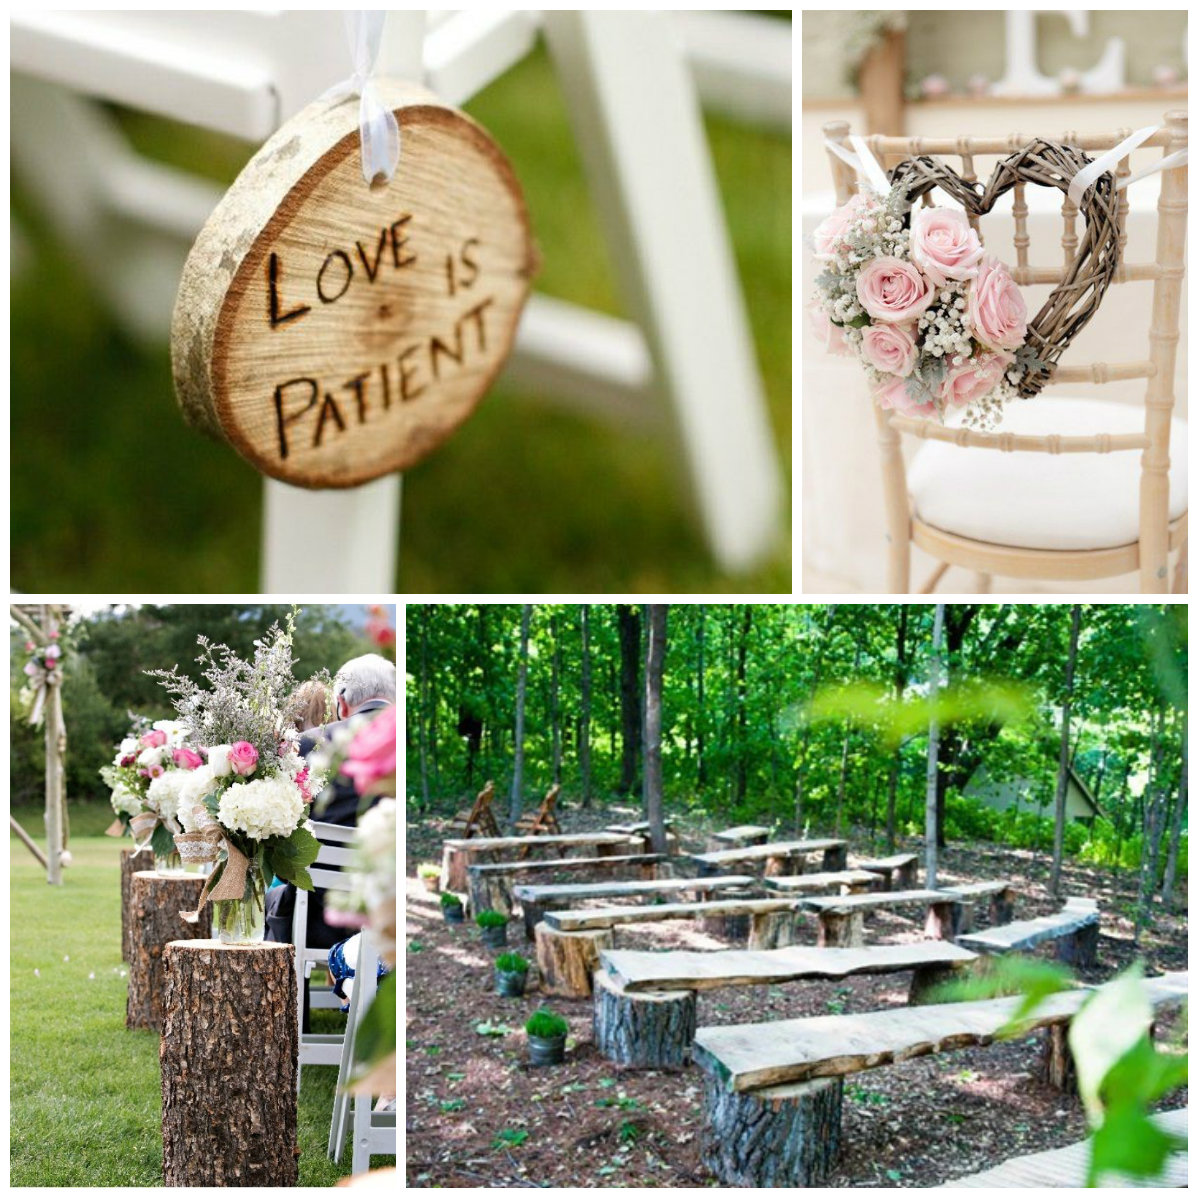 Matrimonio Tema Bosco : Wood wedding weddinglam matrimoni eventi